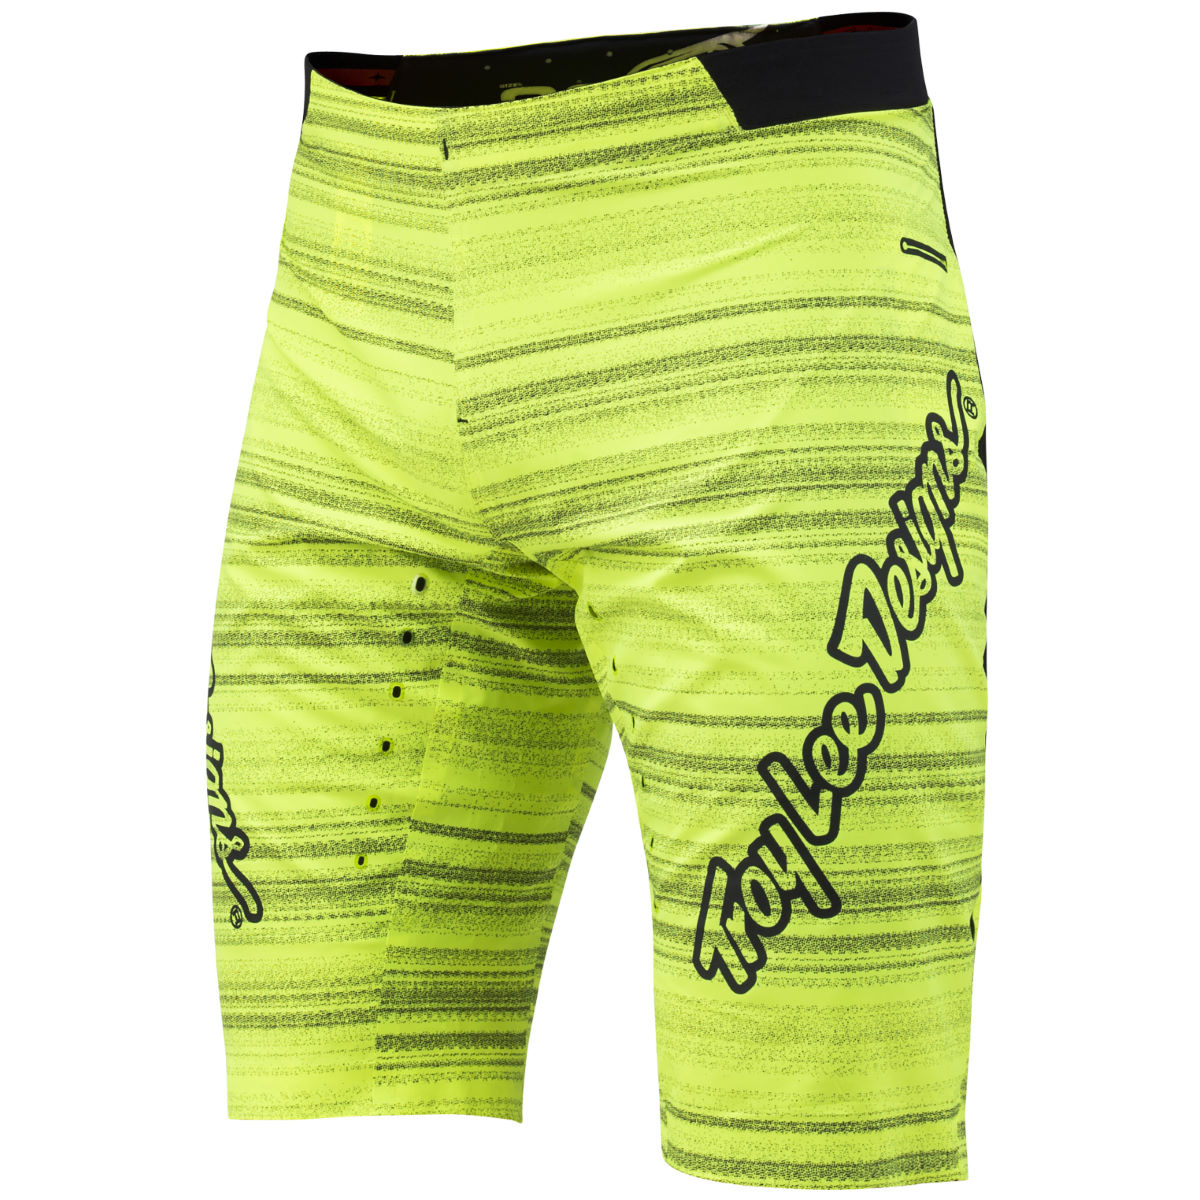 Short Troy Lee Designs Ace Distorted - 36'' Lime Green Shorts amples